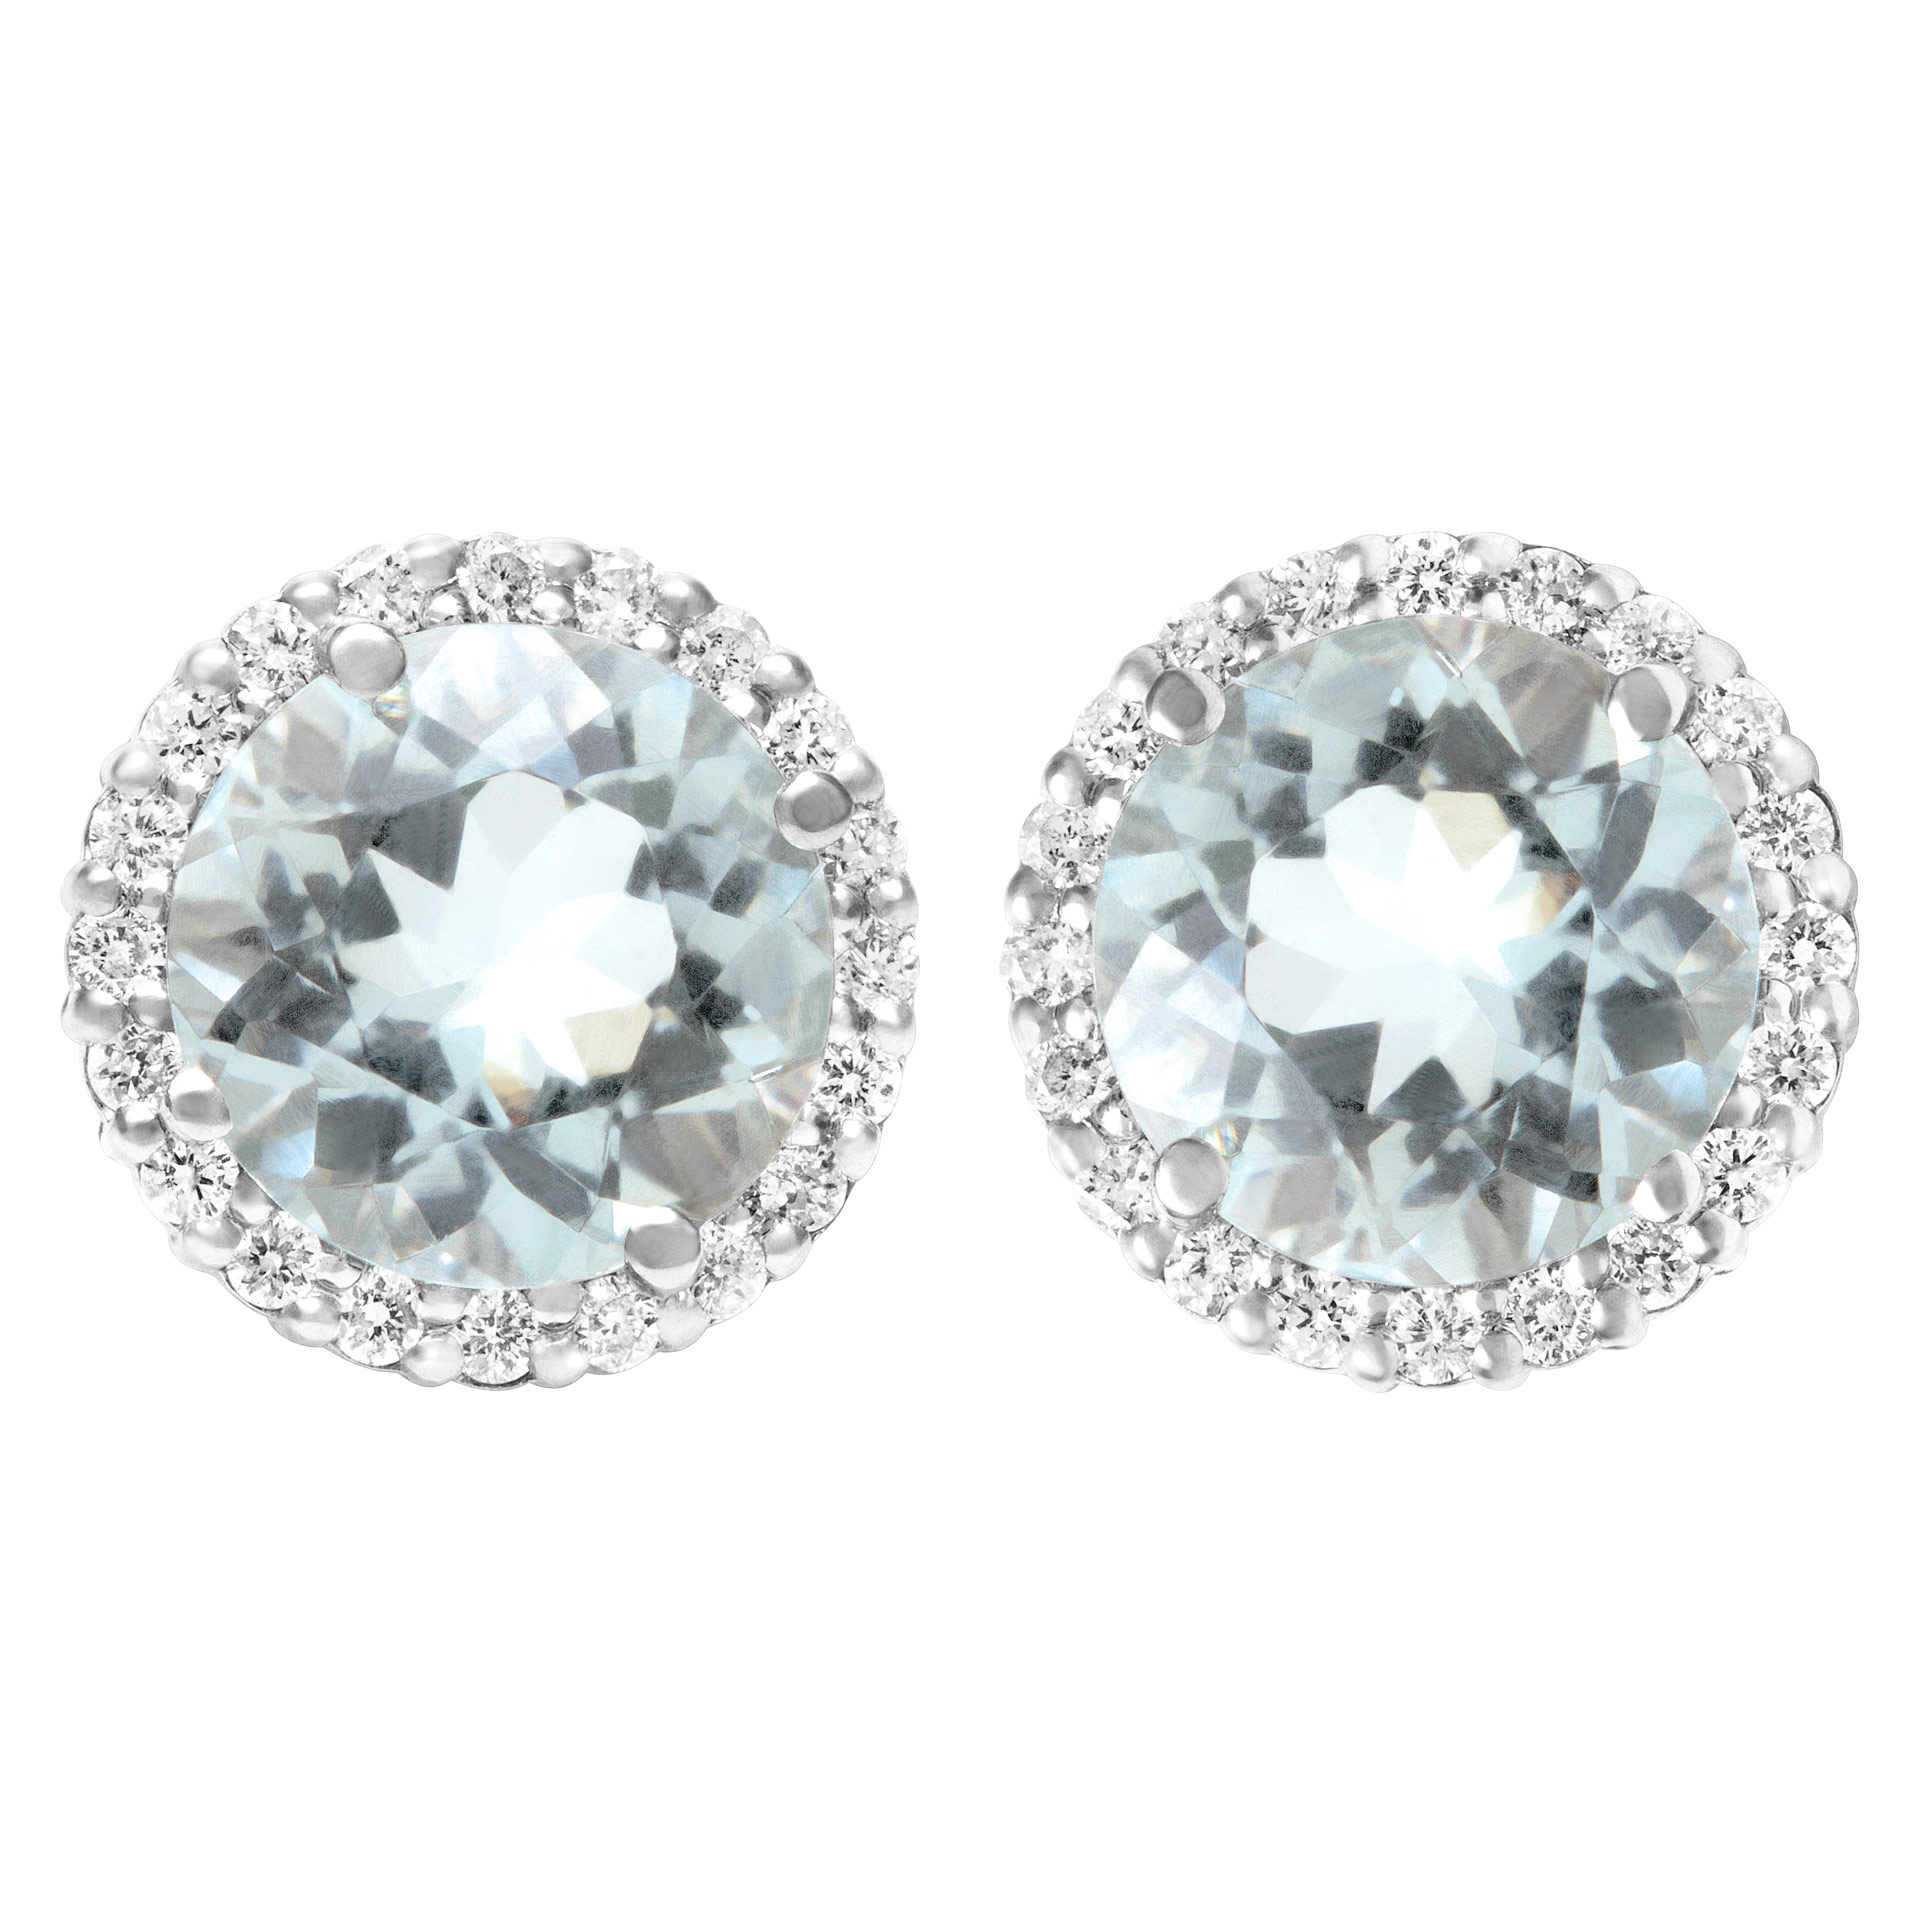 aquamarine stud earrings in 18k white gold with diamonds